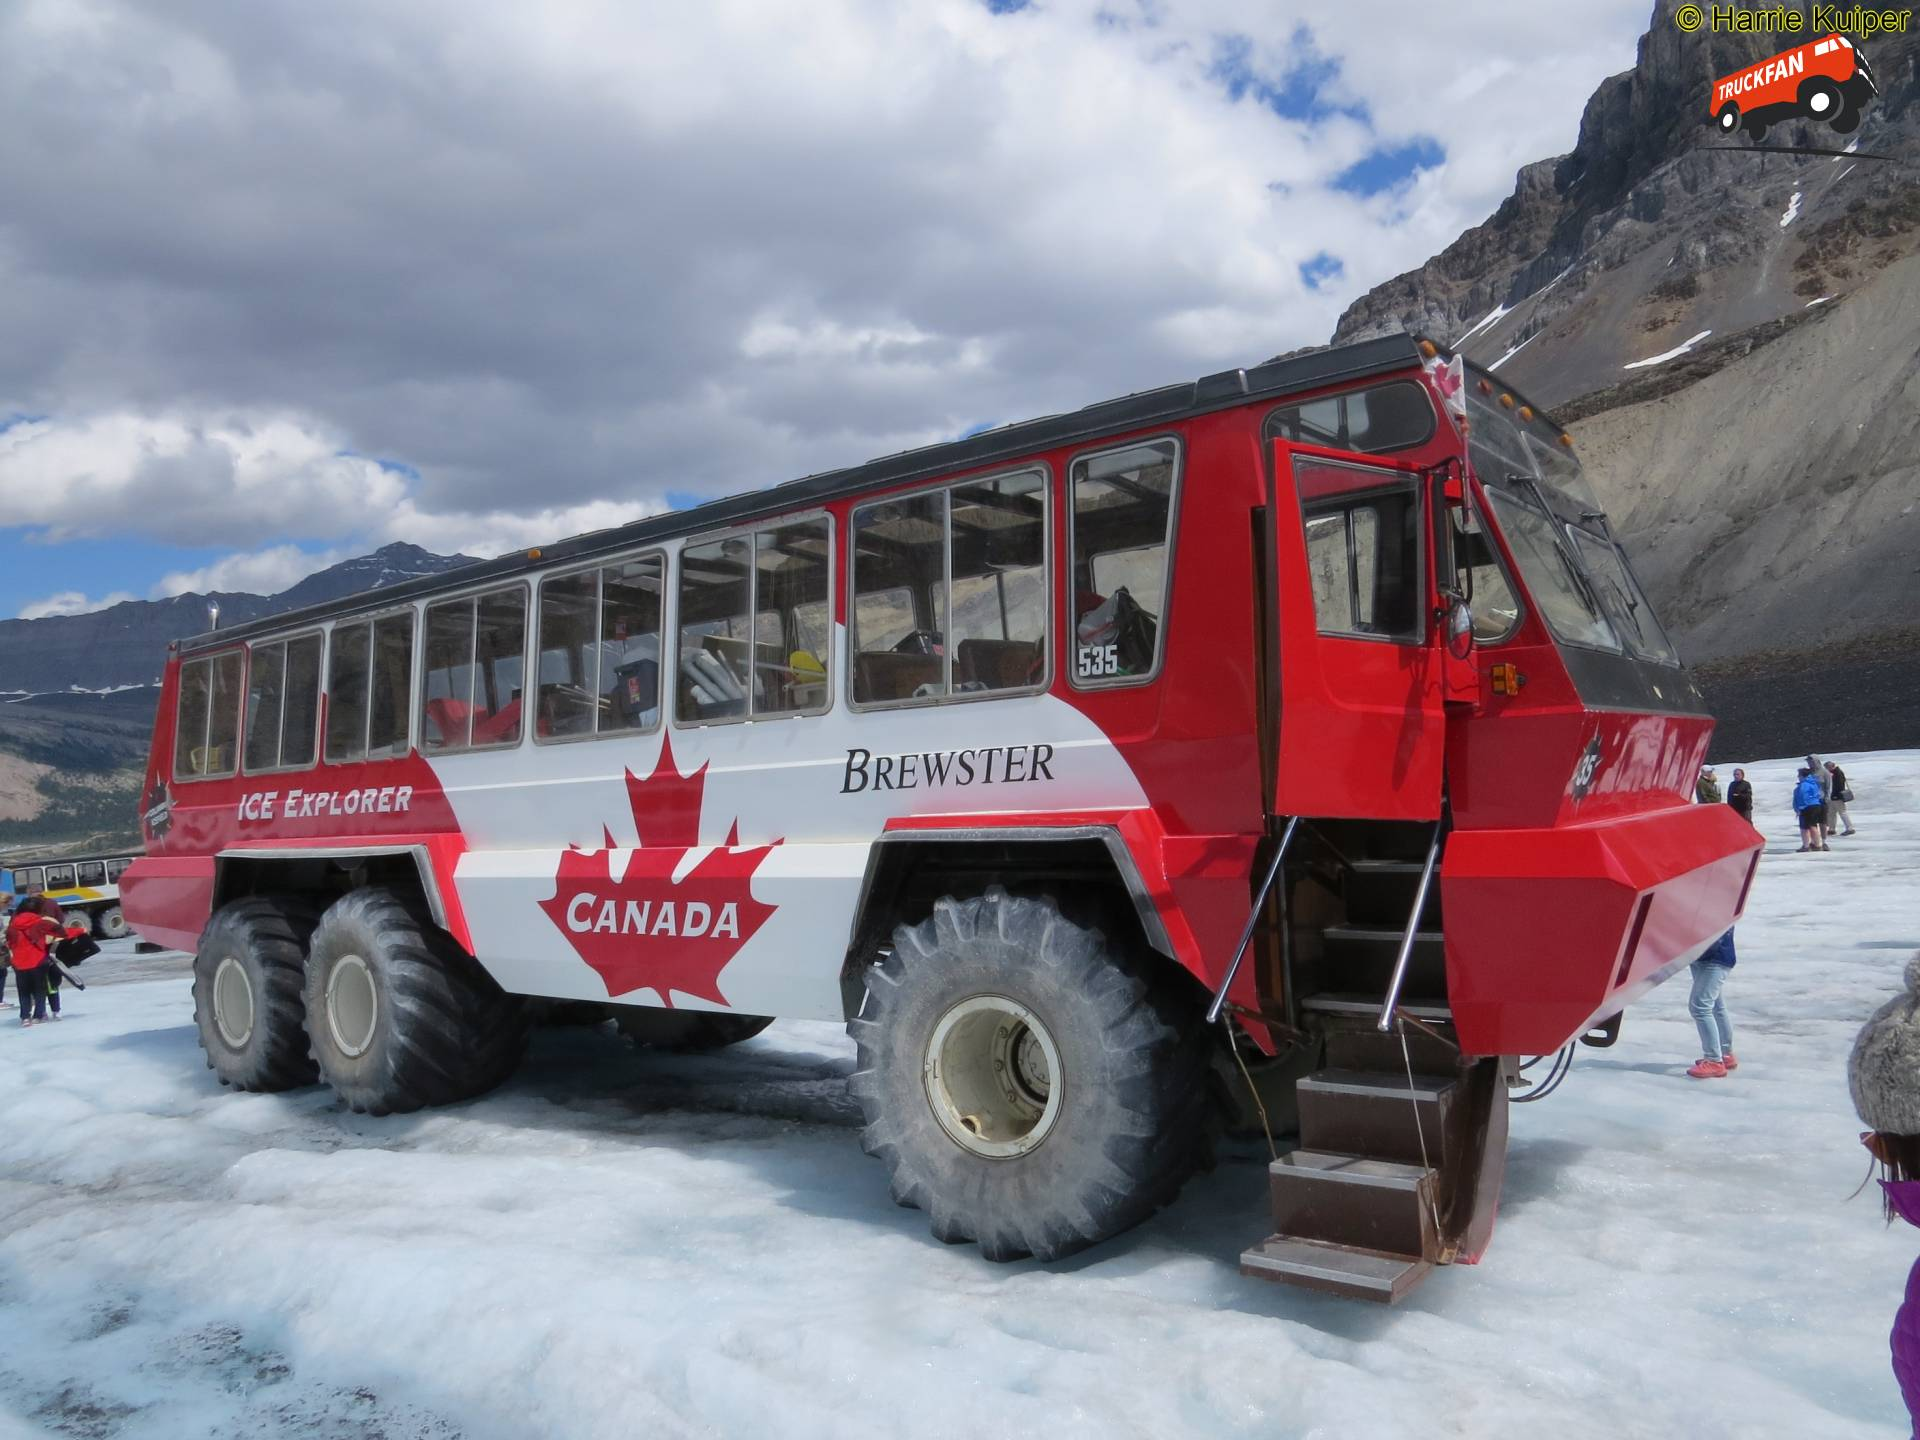 Foremost Terra bus